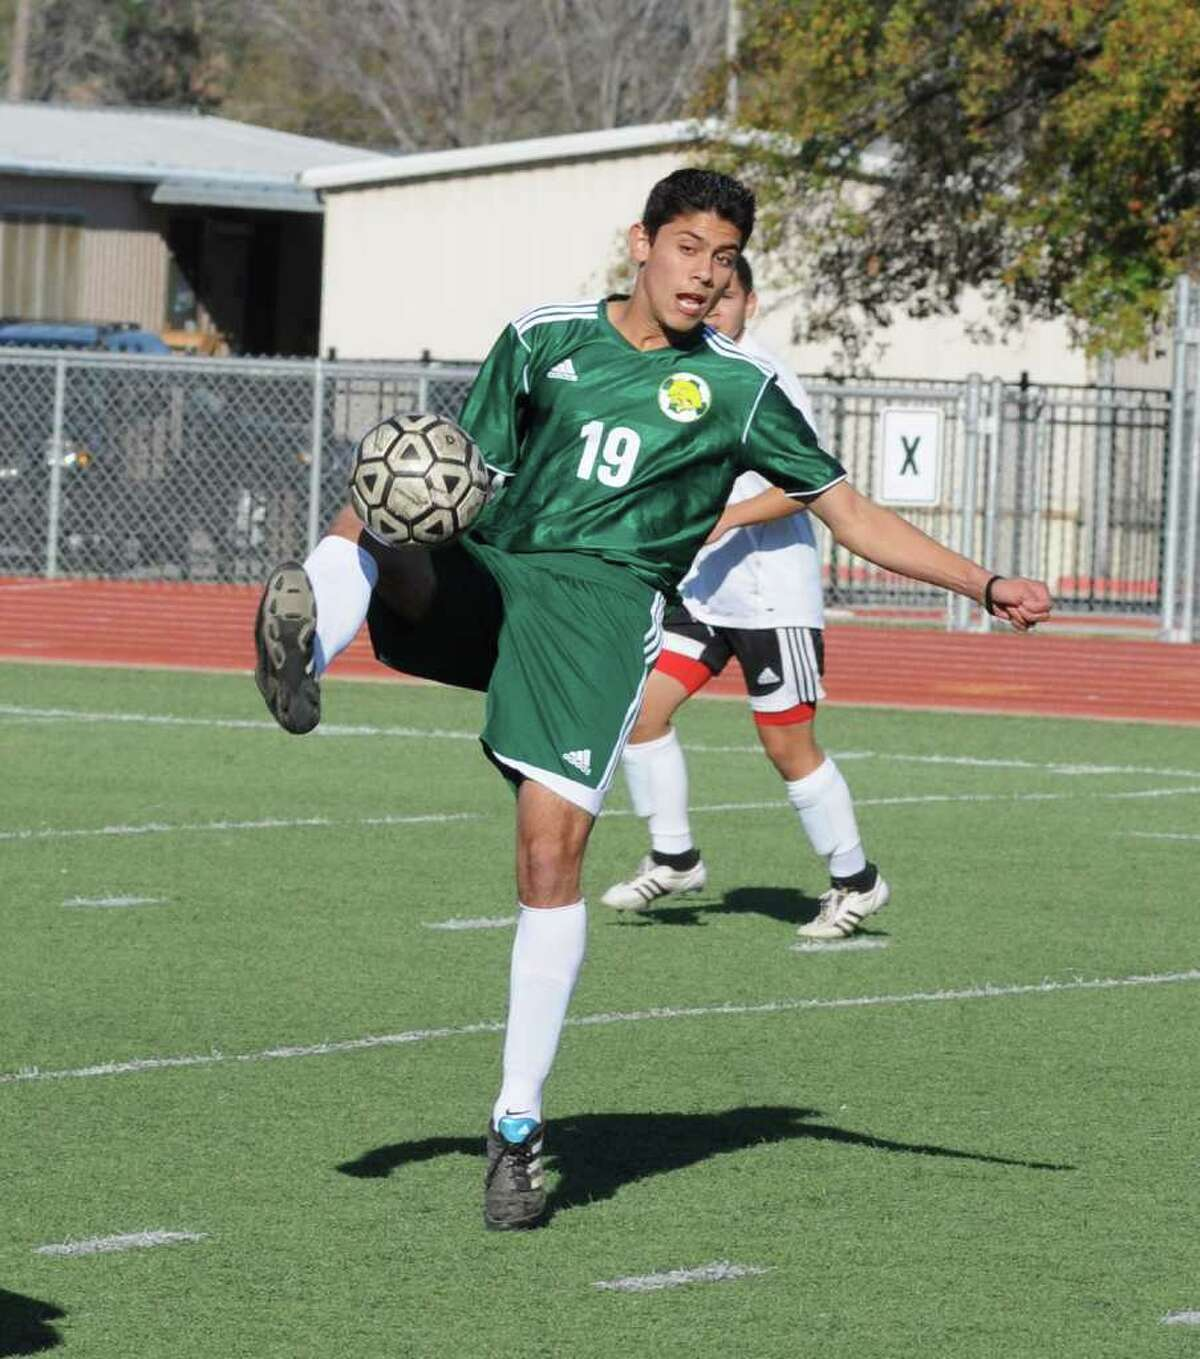 Klein Forest sophomore midfielder-forward Carlos Garza and the Golden Eagles are hoping to rise tothe top in District 13-5A this season.